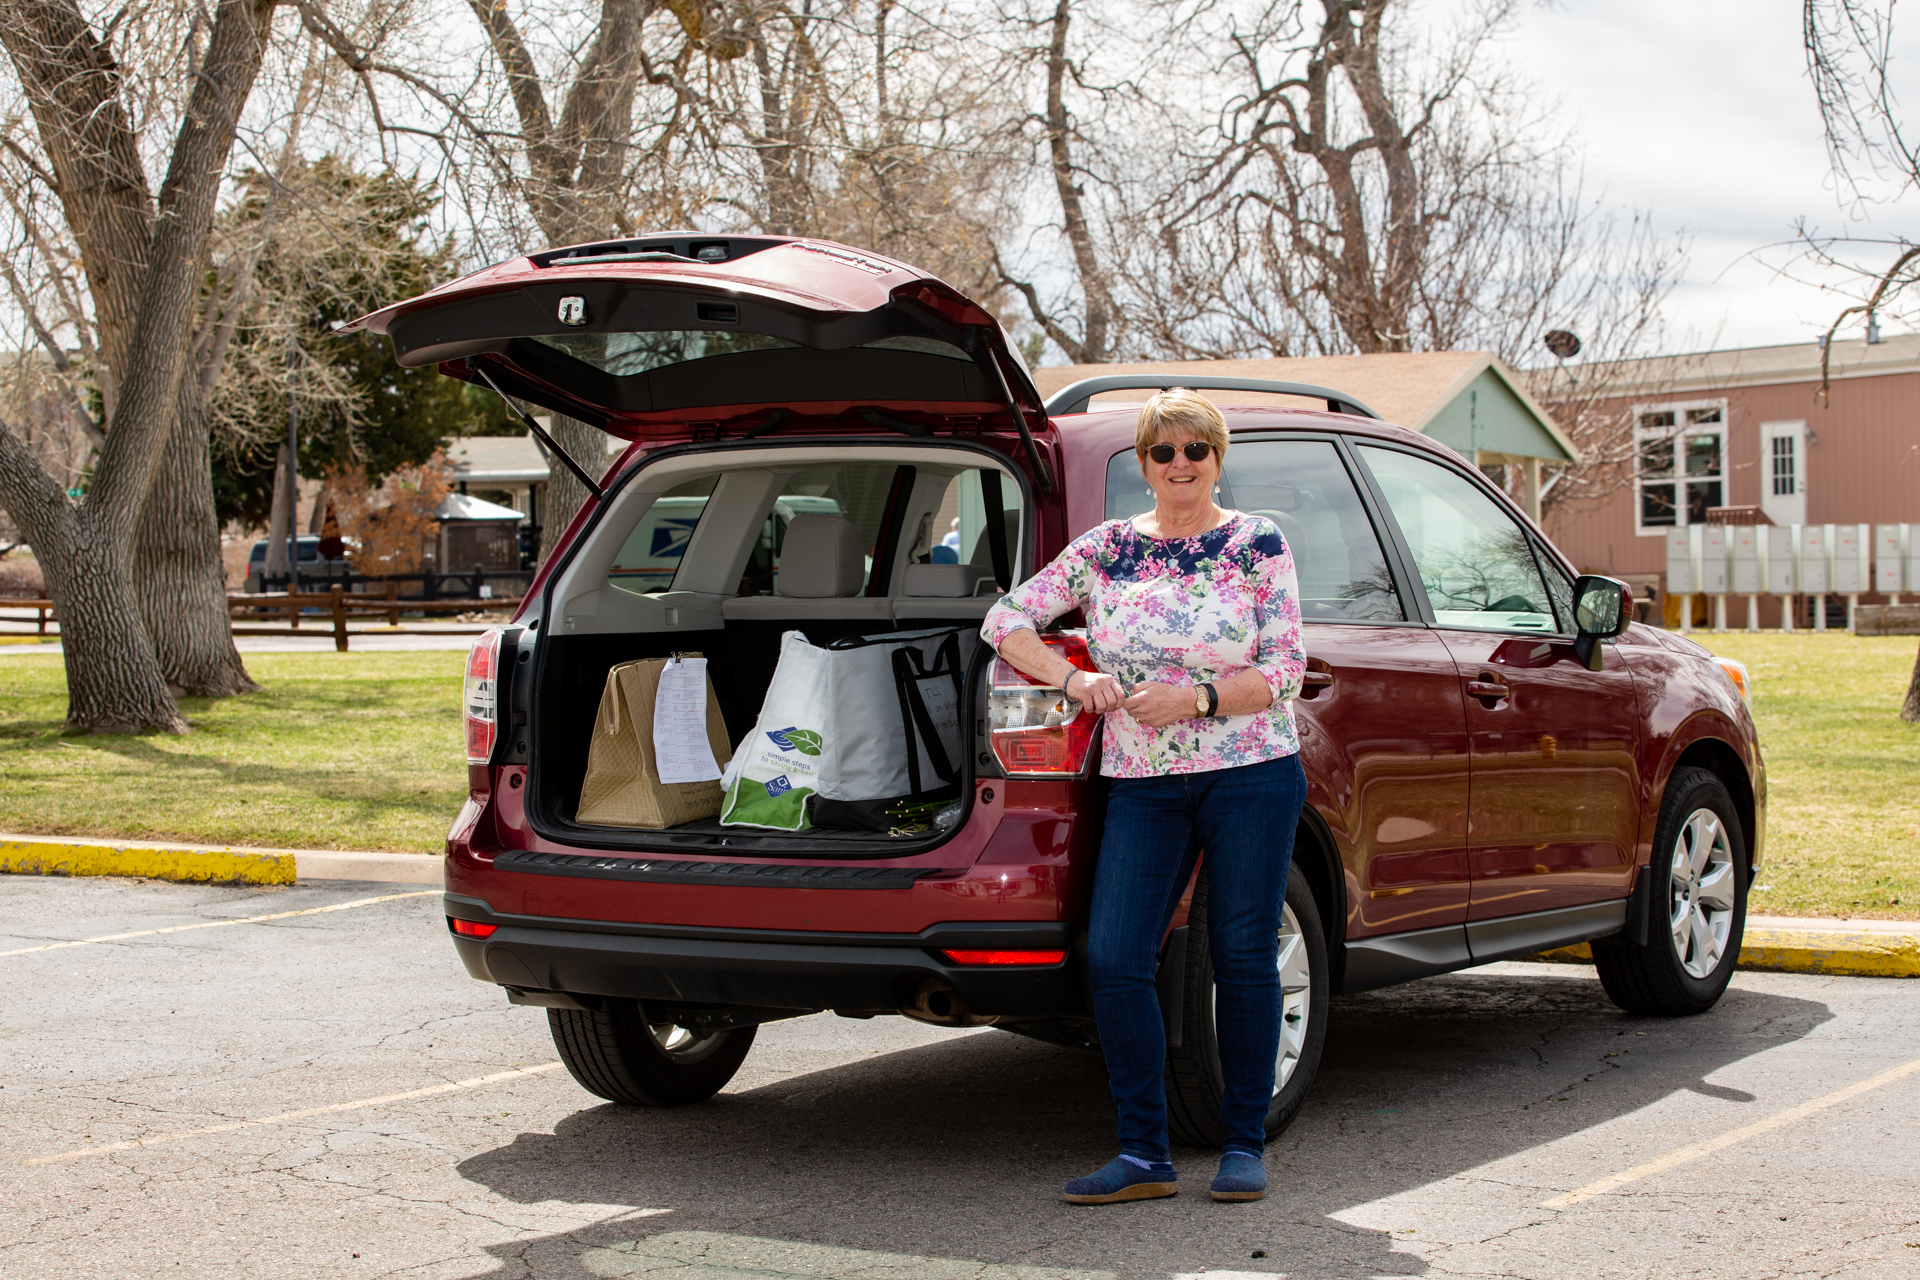 Meals on Wheels deliver more than food during coronavirus shutdown